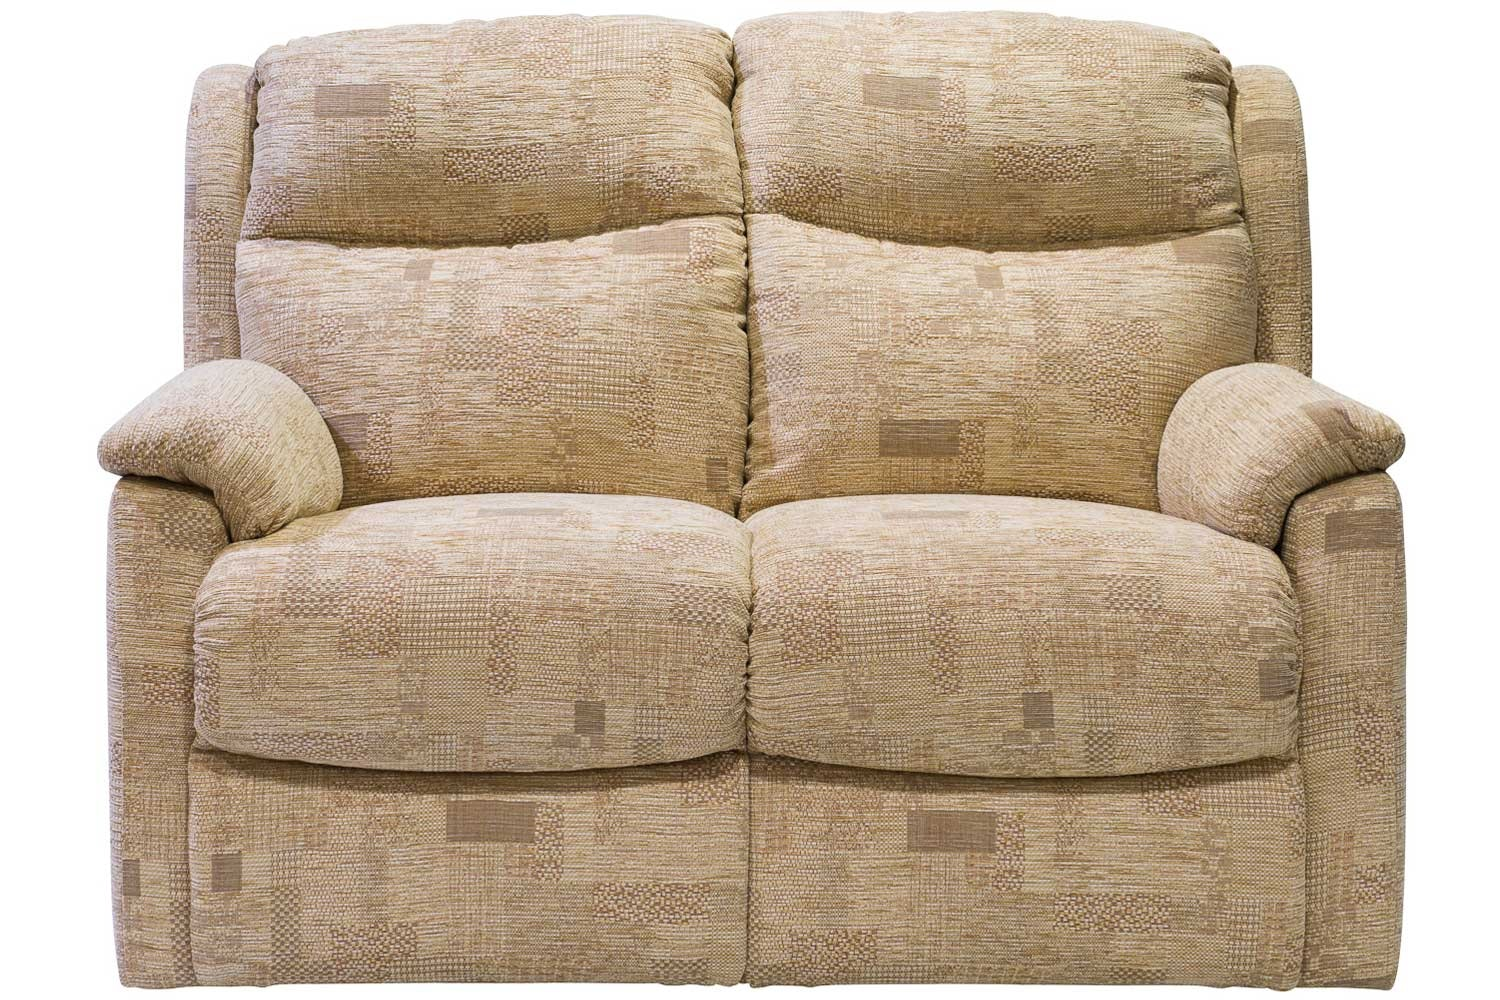 Barton 2 Seater Sofa